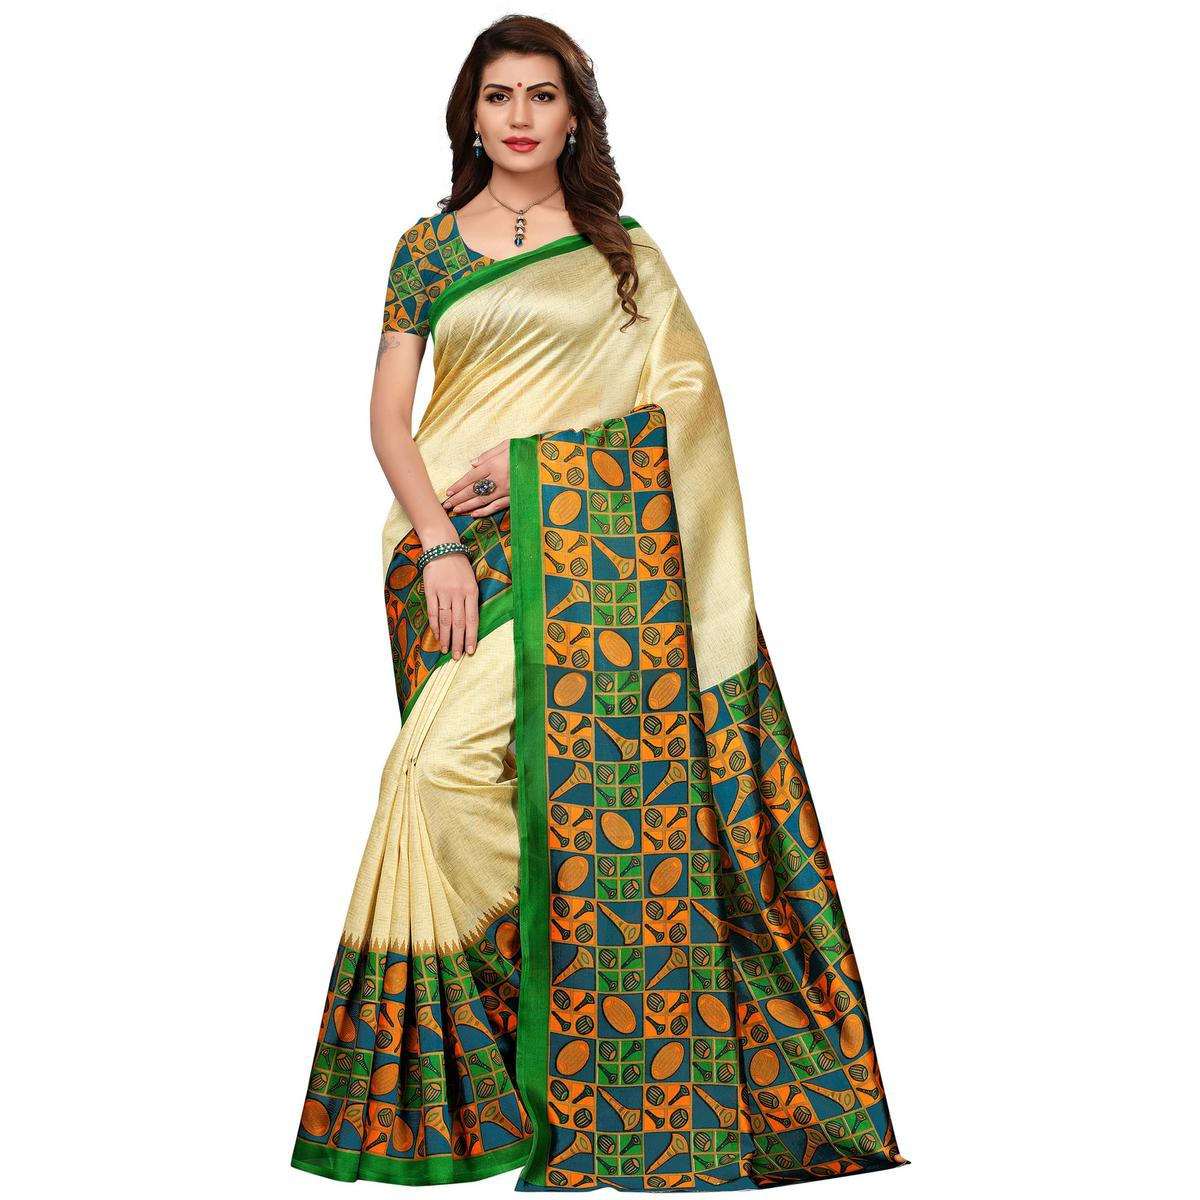 Lovely Cream-Green Colored Printed Festive Wear Mysore Art Silk Saree